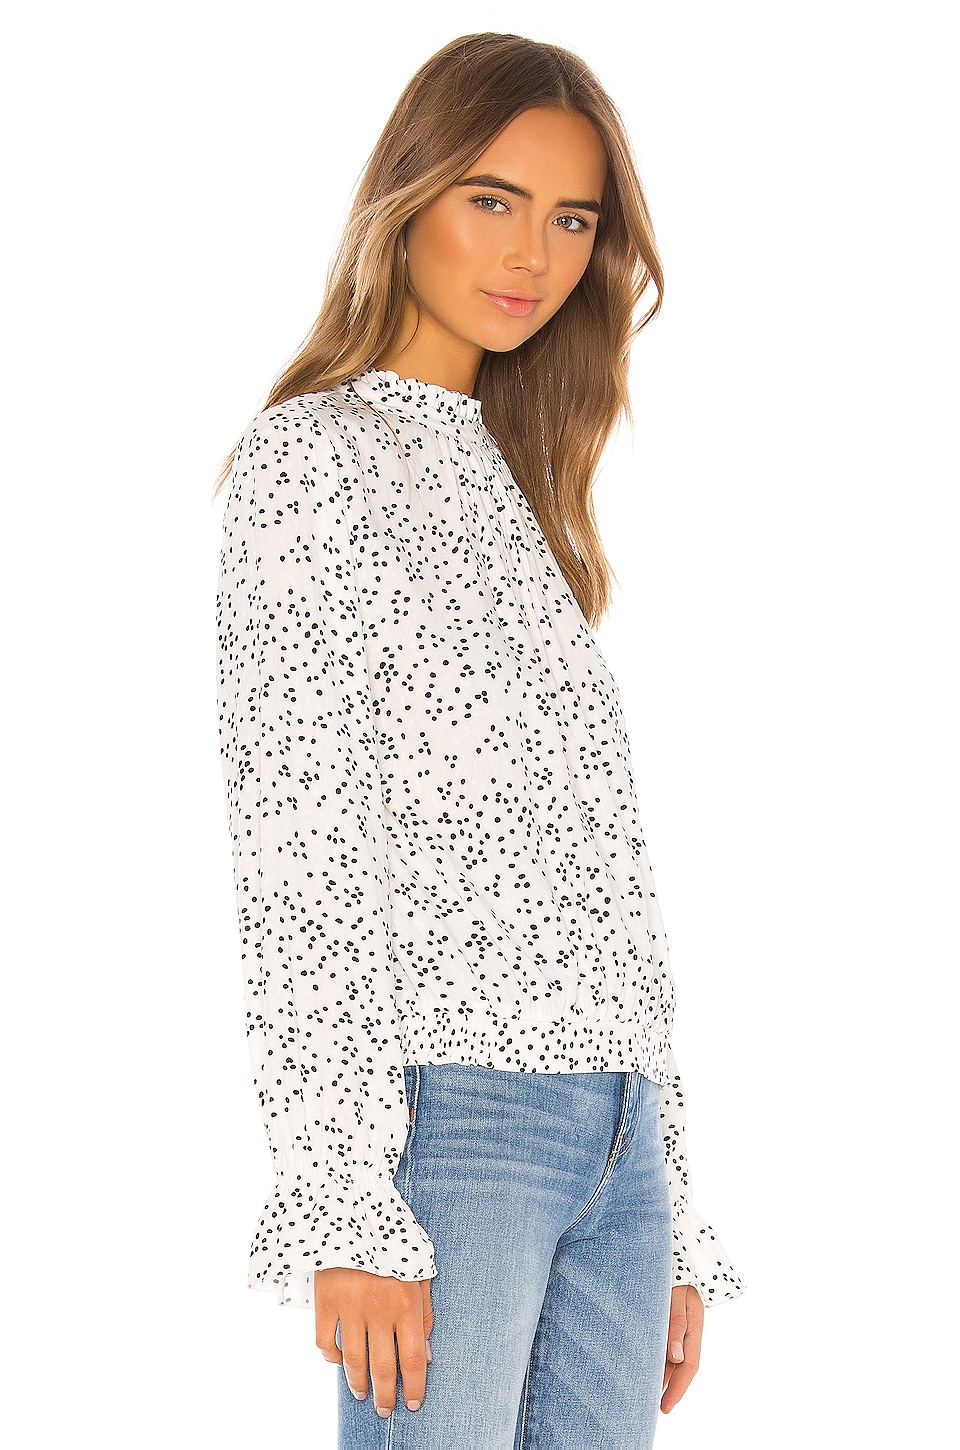 Solstice Mock Neck Blouse, view 2, click to view large image.